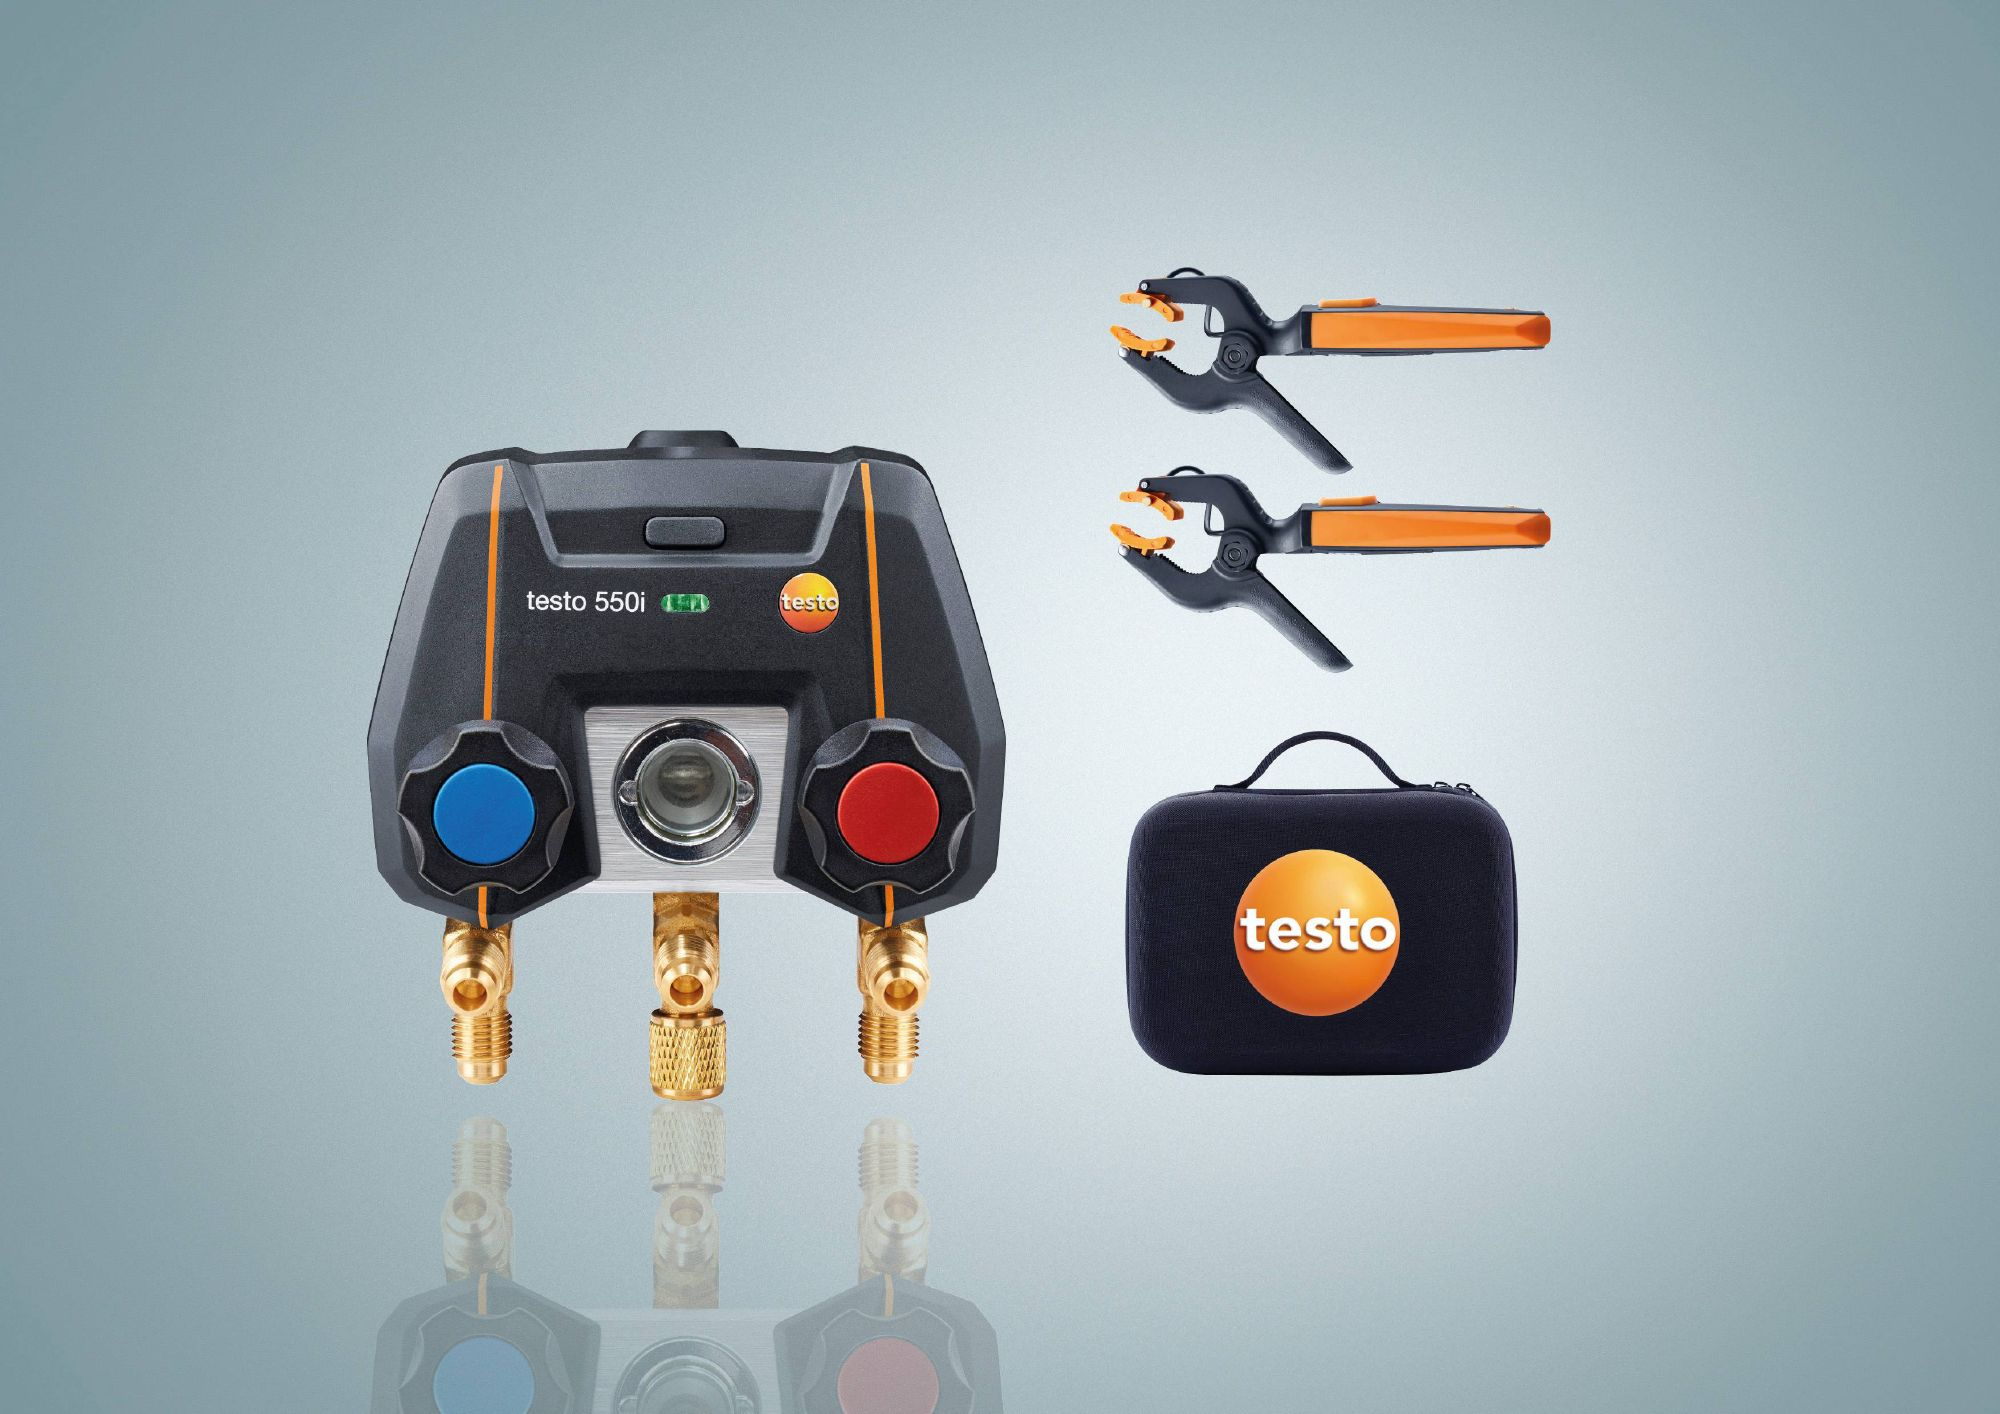 testo 550i Smart Kit - App operated Manifold with wireless Temperature Probes